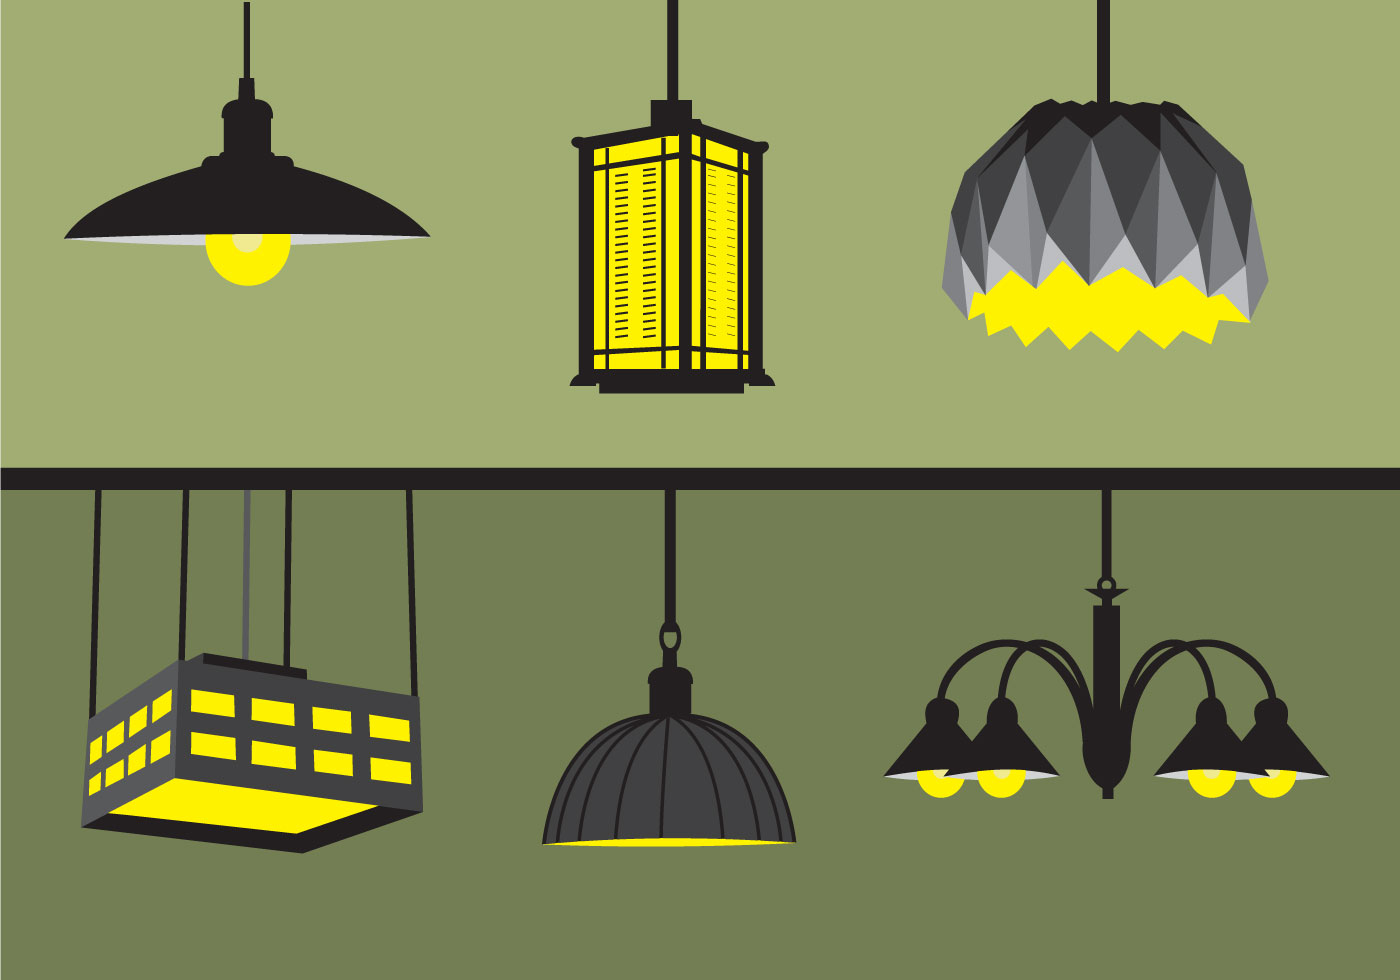 hanging light free vector art  6743 free downloads string lights clipart no background string lights clipart